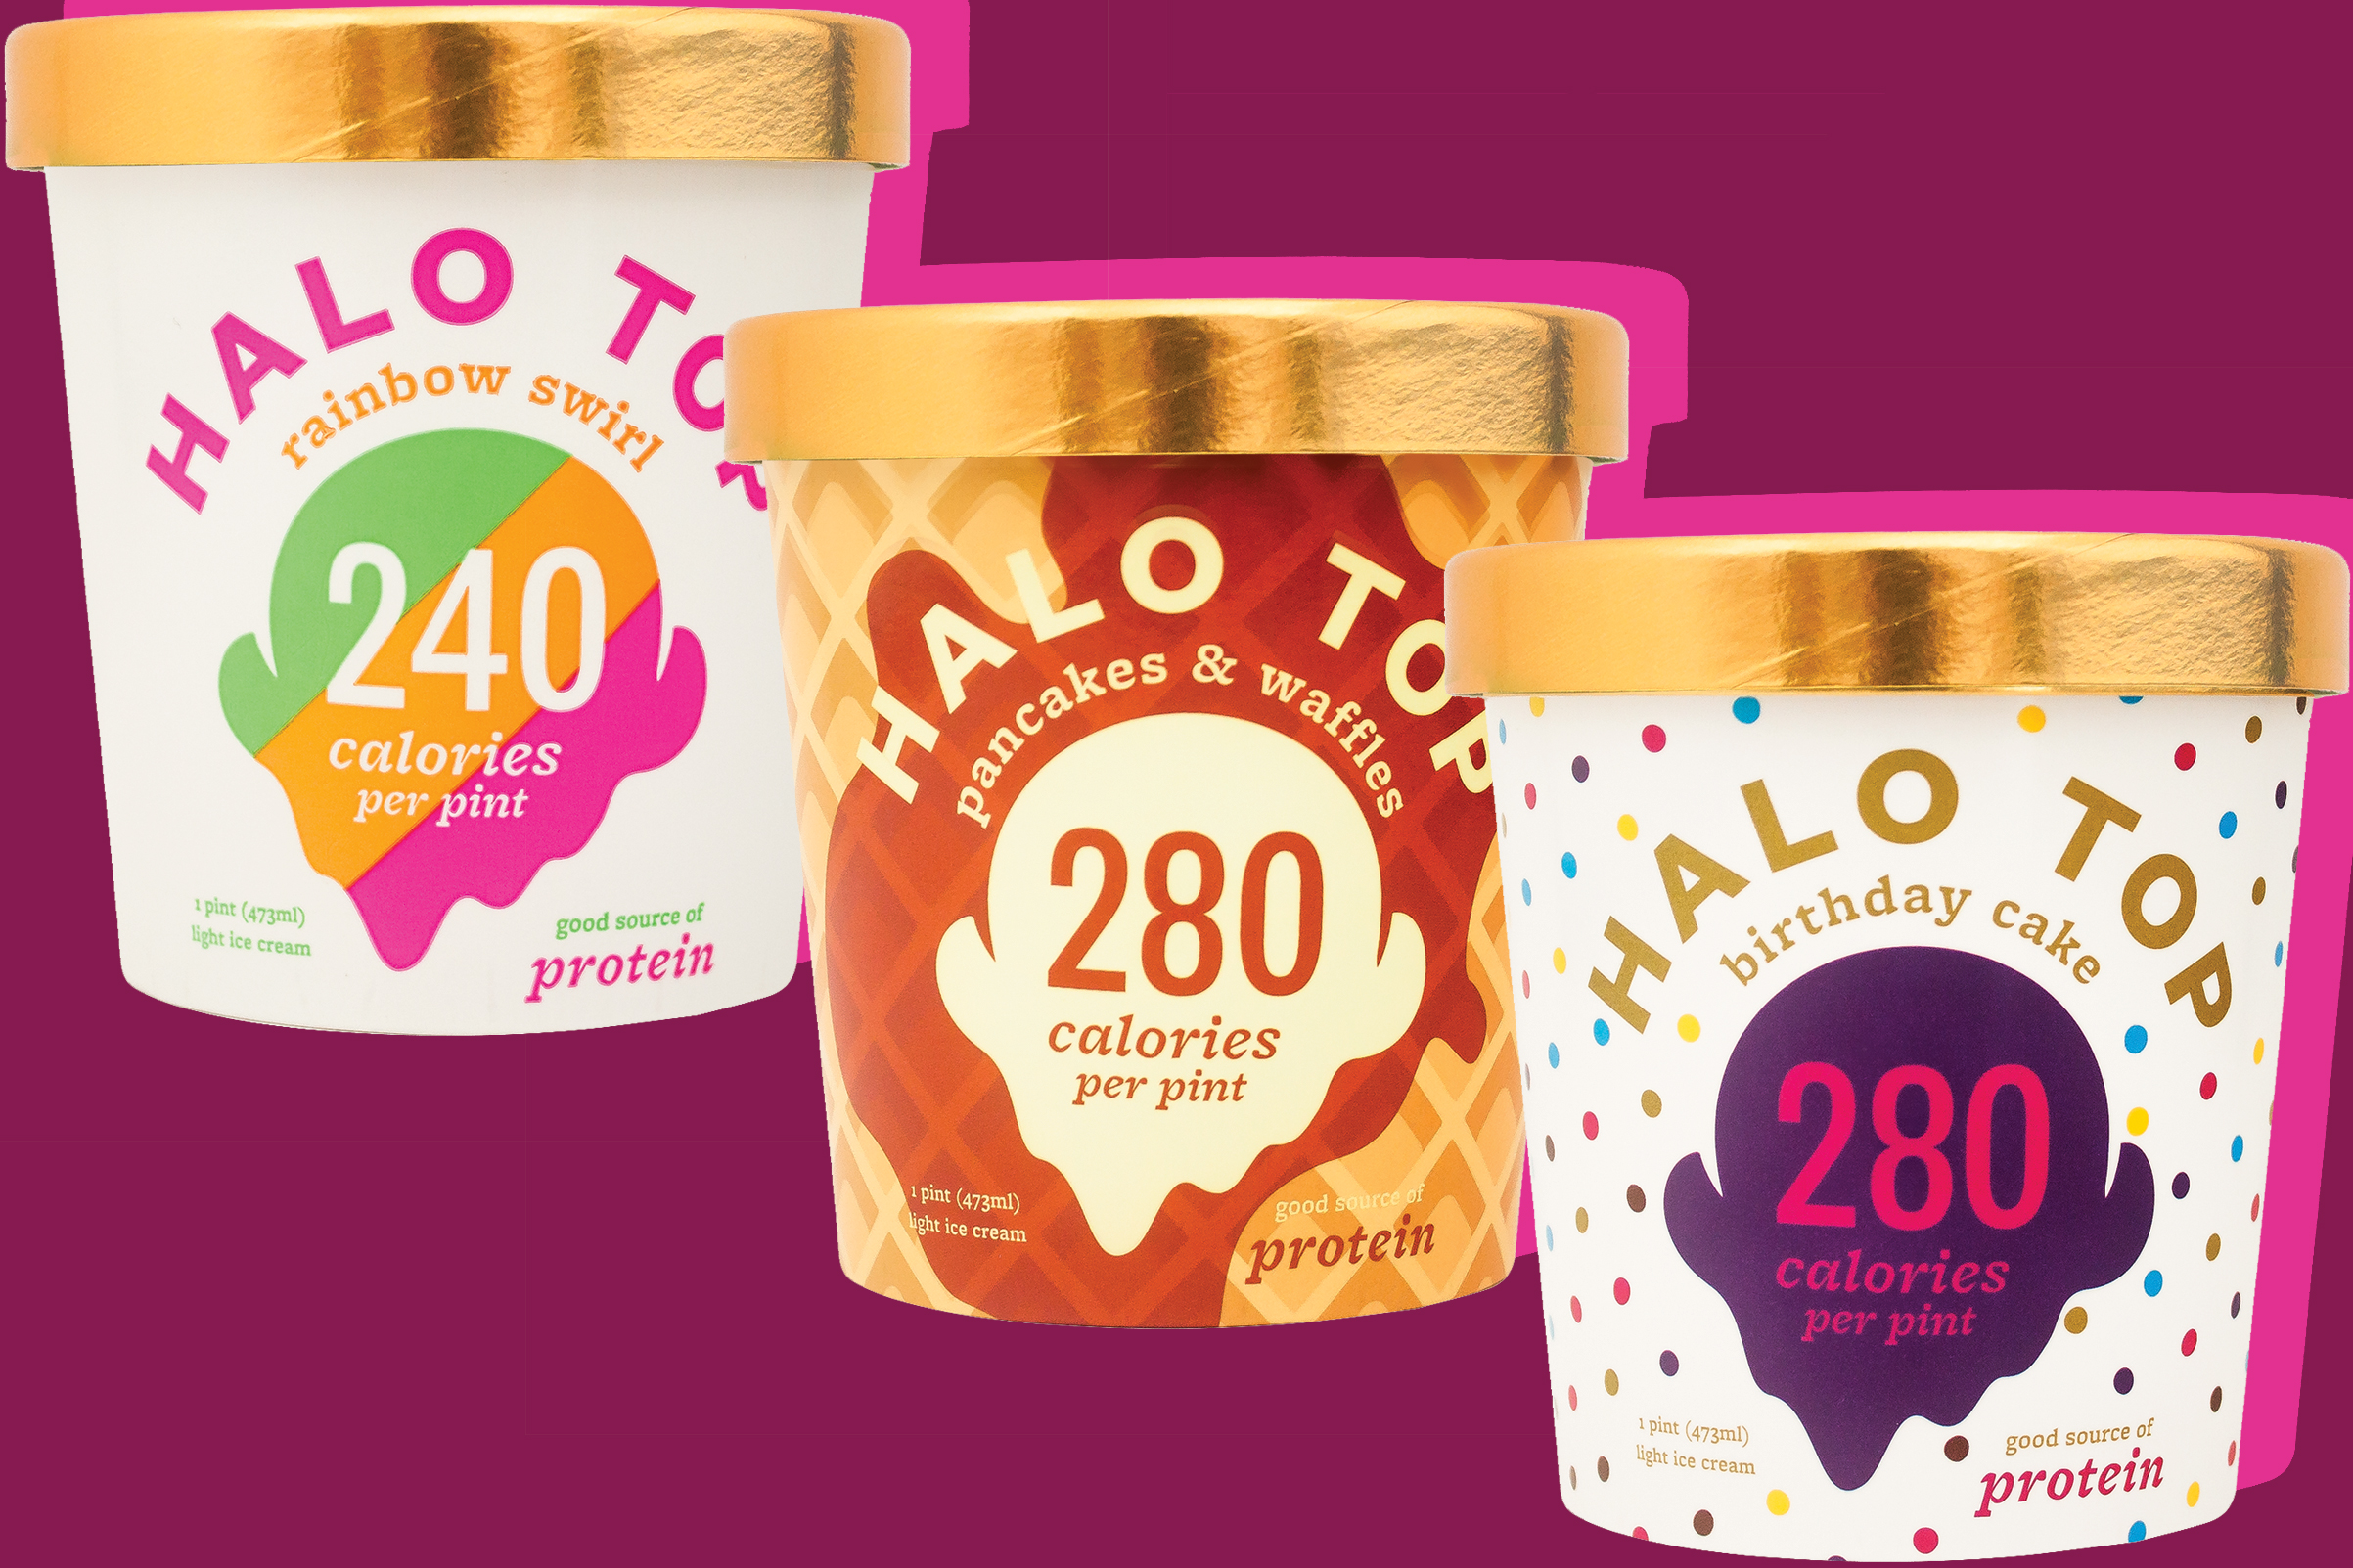 Halo Top ice cream is one of the best inventions of 2017